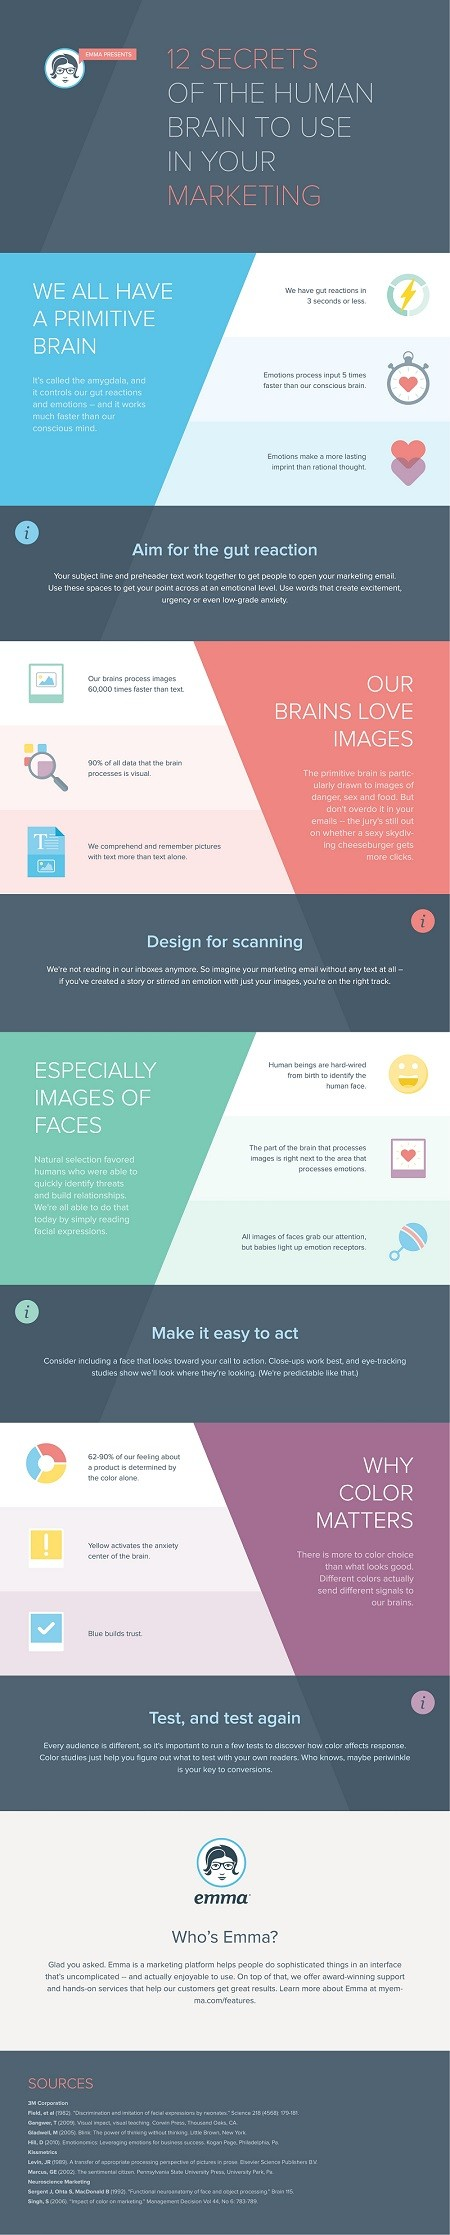 consumer-behaviour-the-psychology-of-marketing-infographic-image